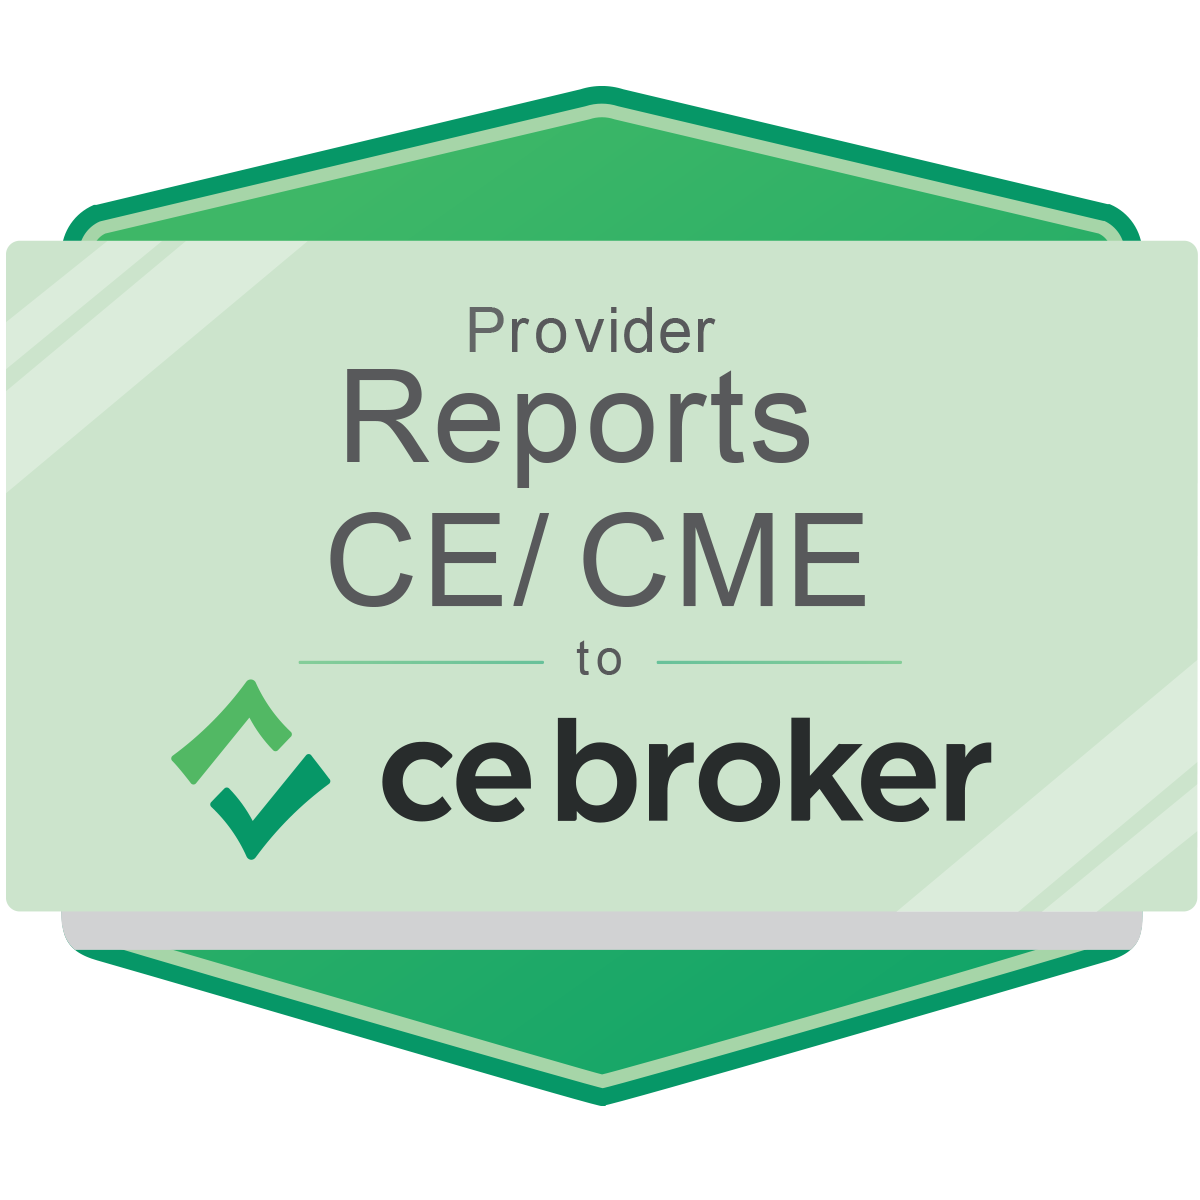 RN.com Automatically Reports to CE Broker